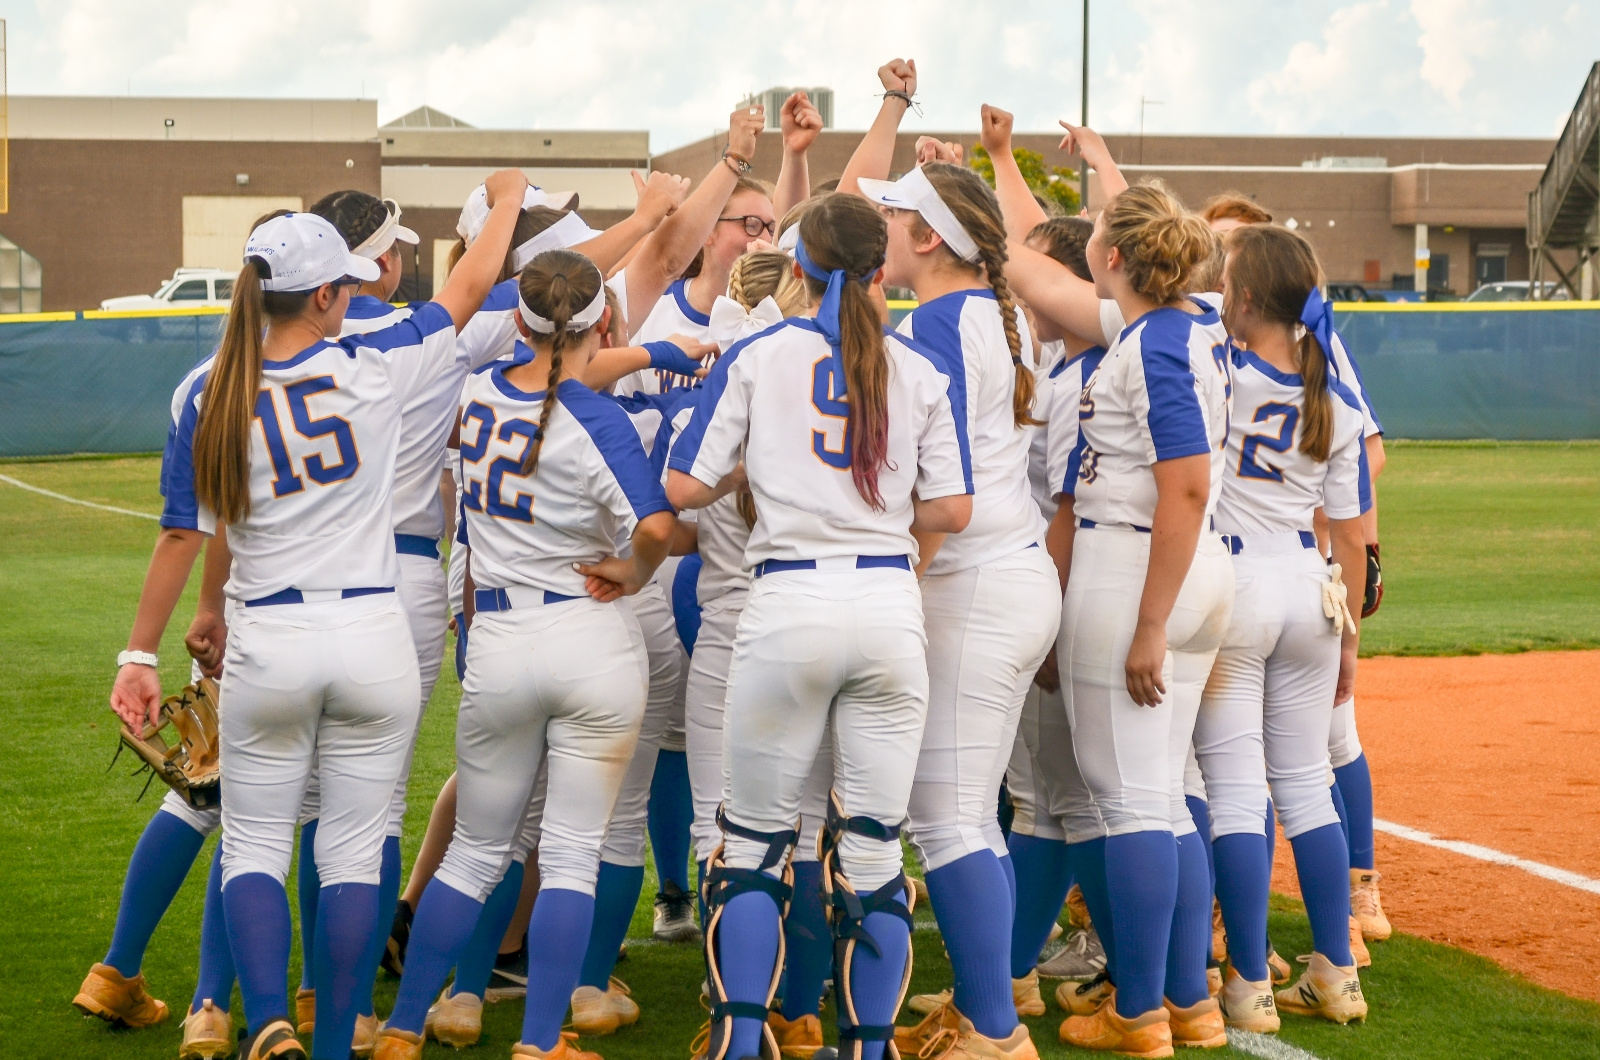 9-Run Sixth Sinks Wildcats; Game 2 Wednesday at Home